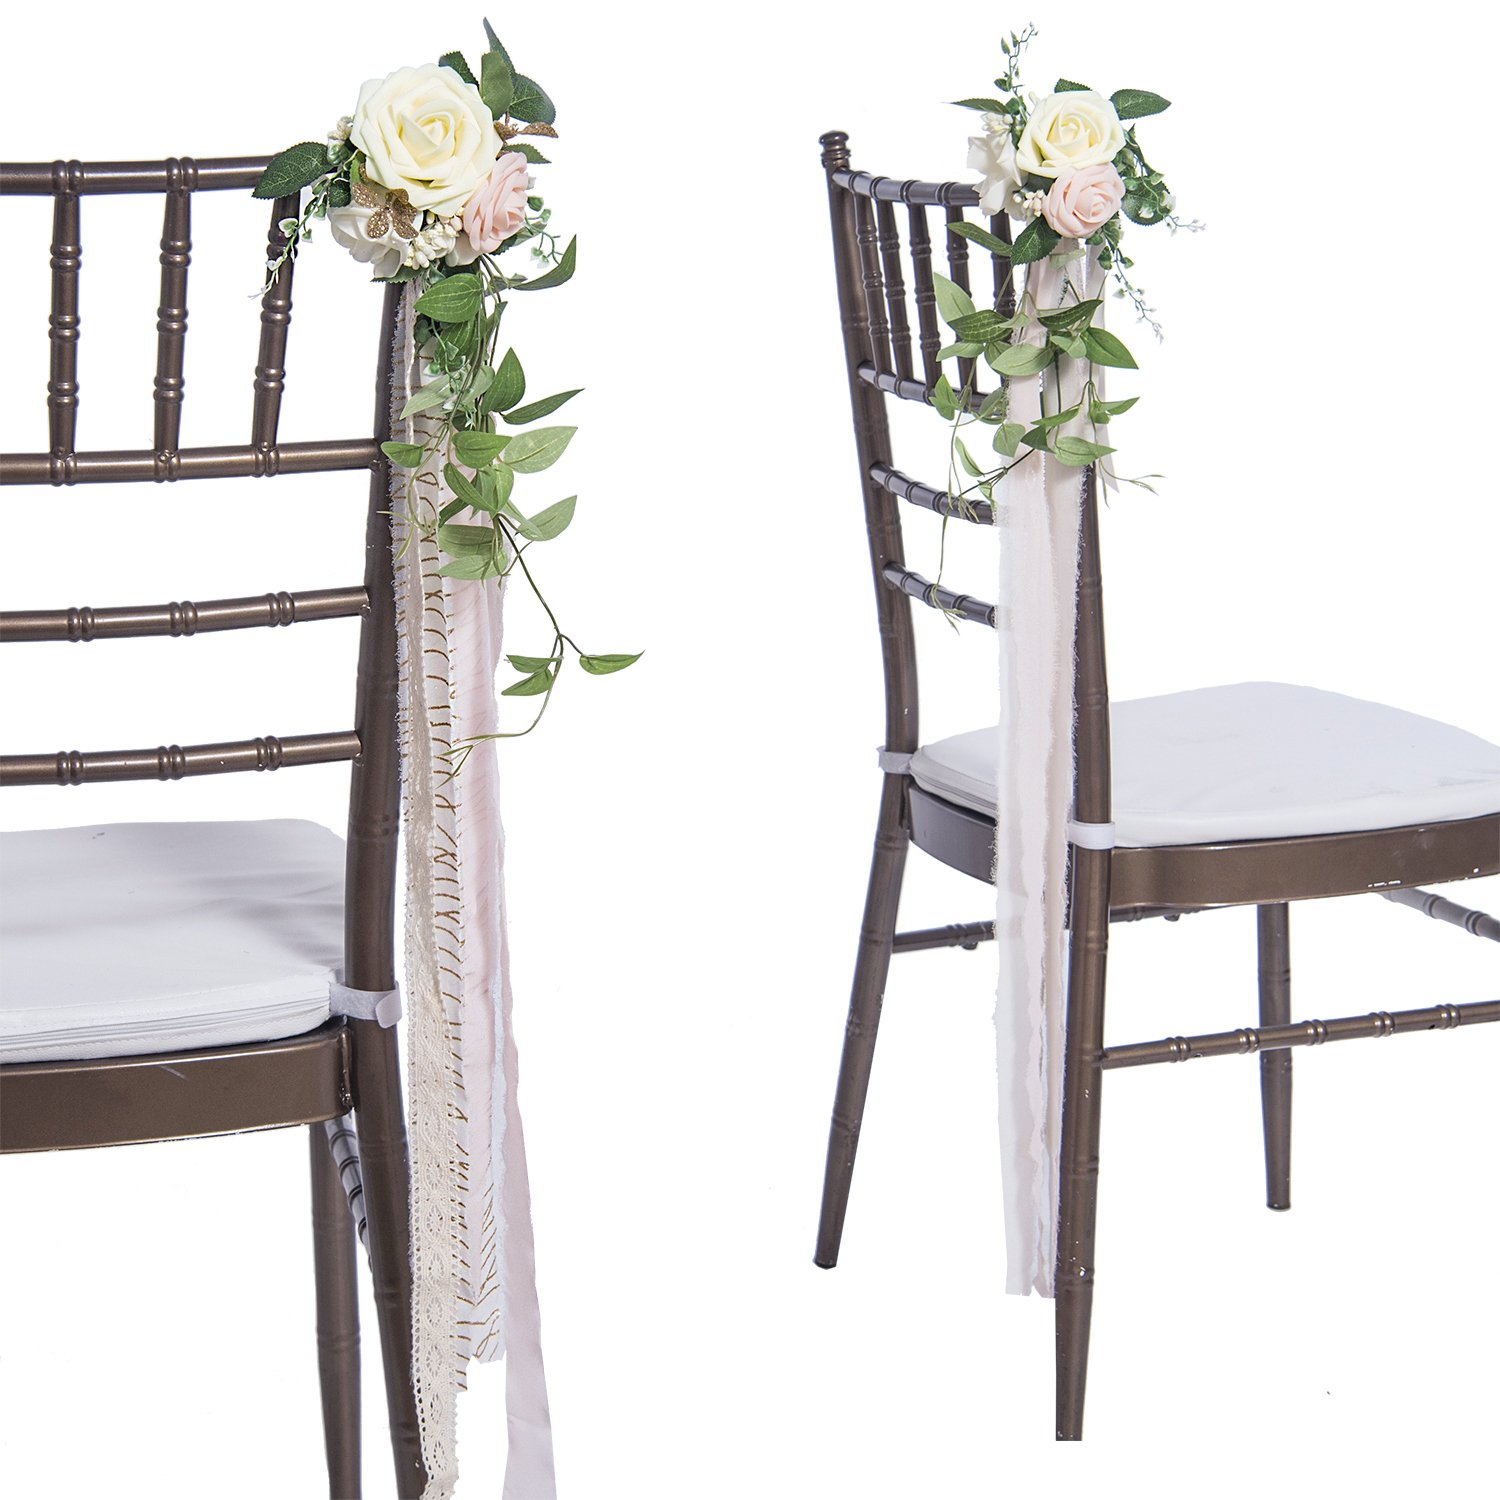 Ling's moment Set of 8 Blush Ivory Floral Aisle Markers Wedding Aisle Chair Decorations Pew Flowers by Ling's moment